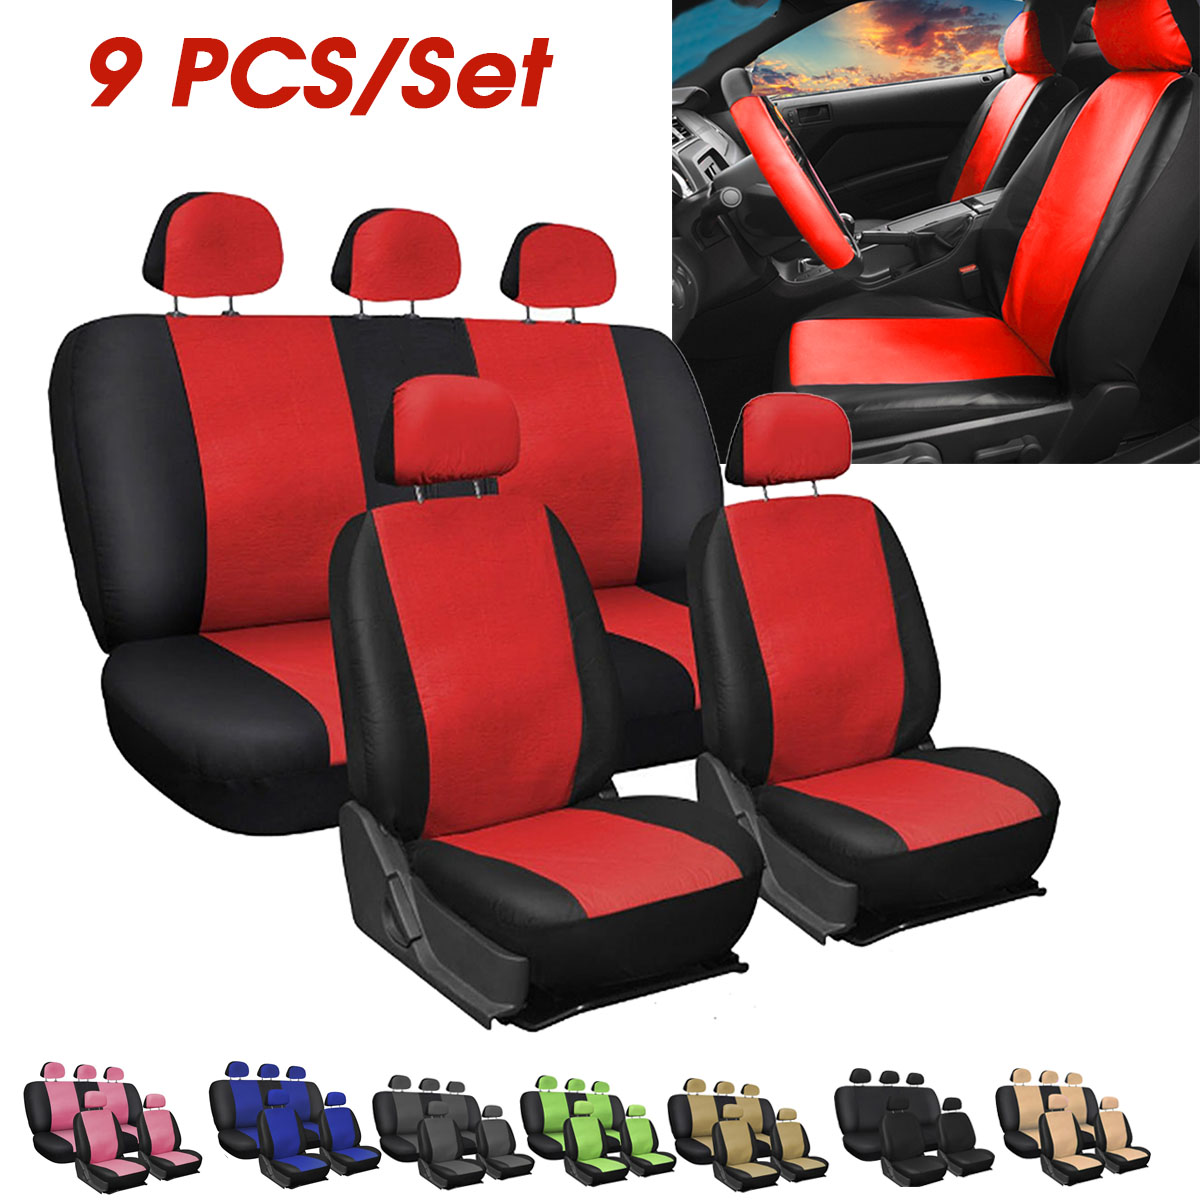 2x Sports Look Grey Front Car Seat Covers Quality Leather Look Protectors